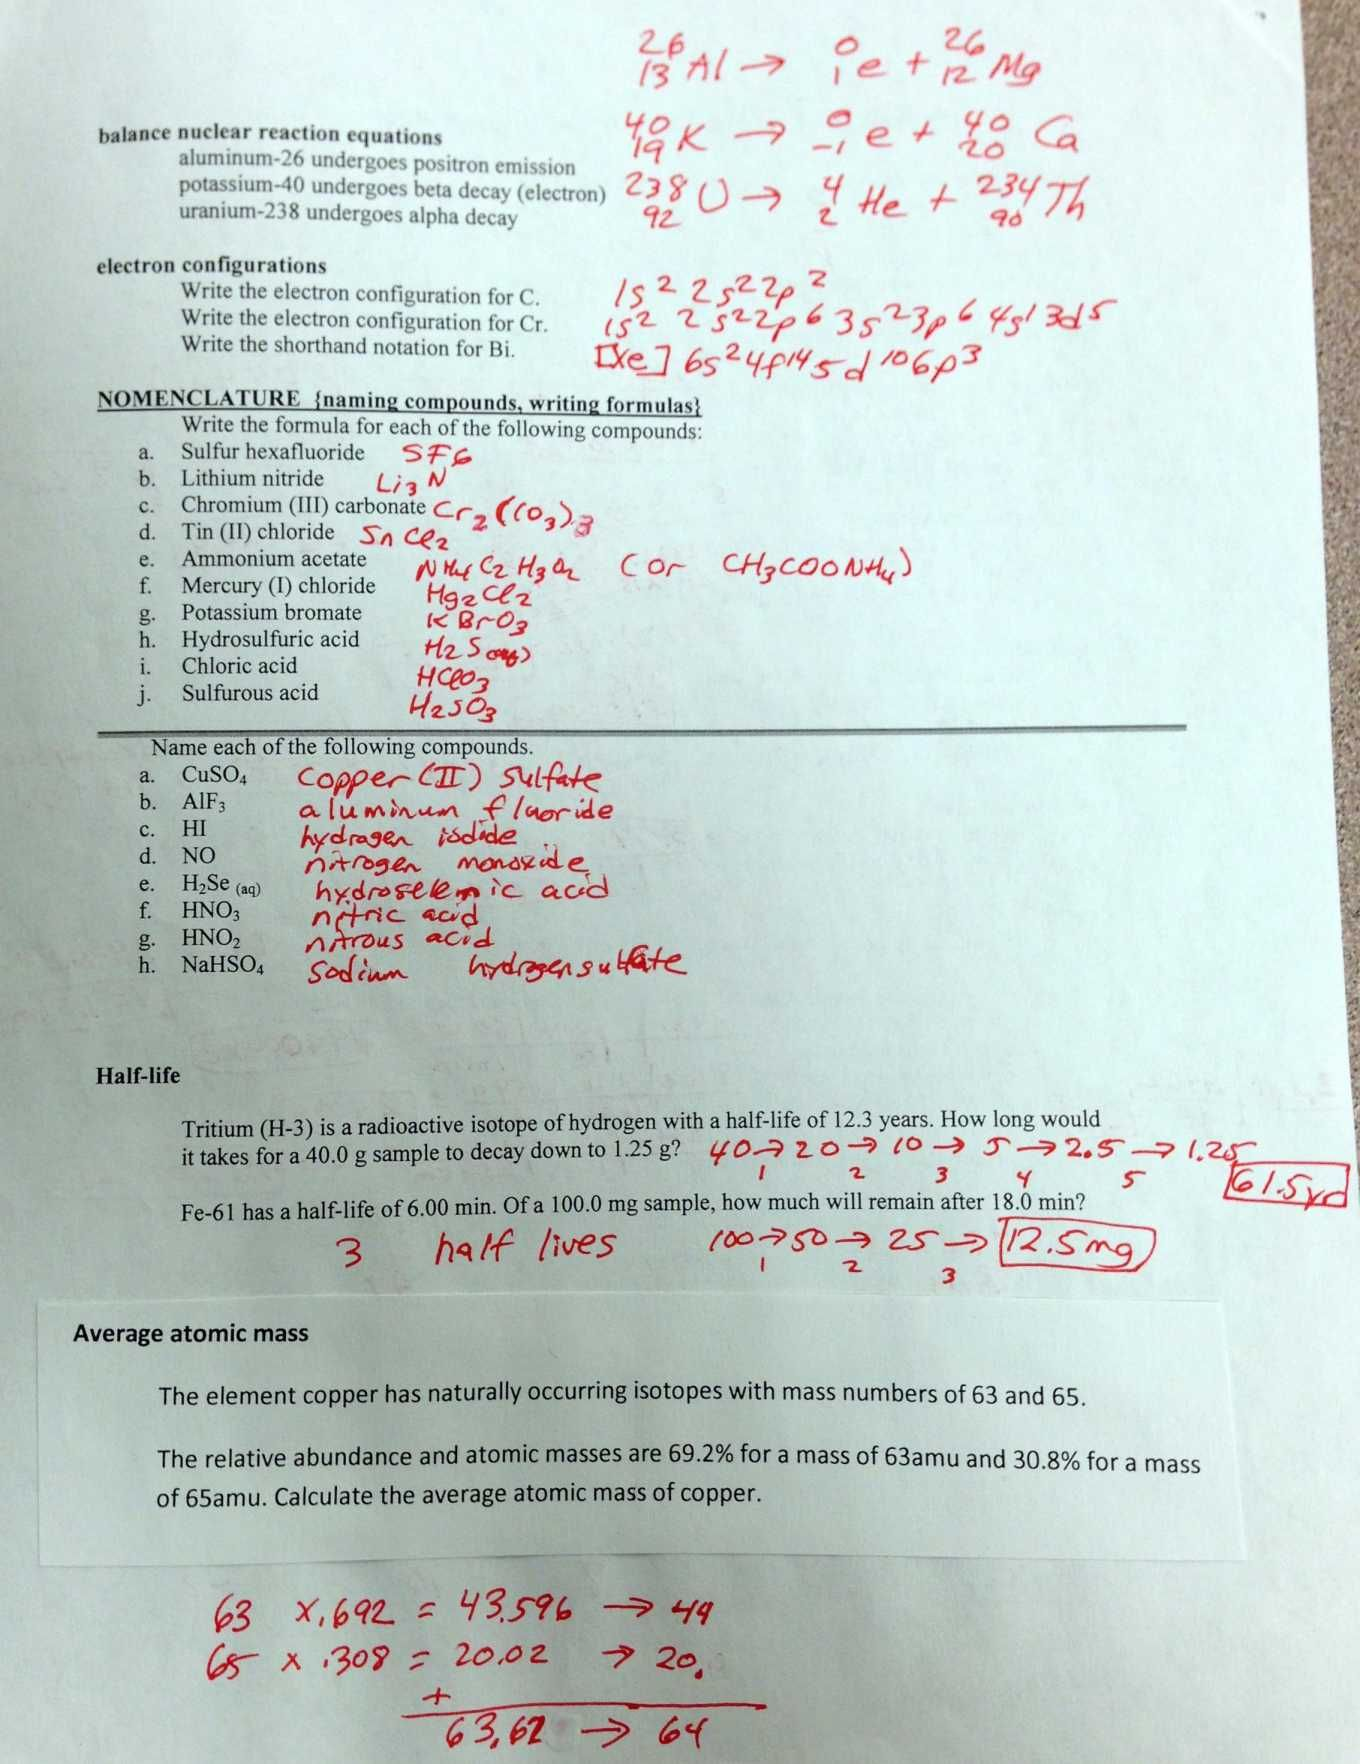 Electron Orbital Configuration Worksheet Answers